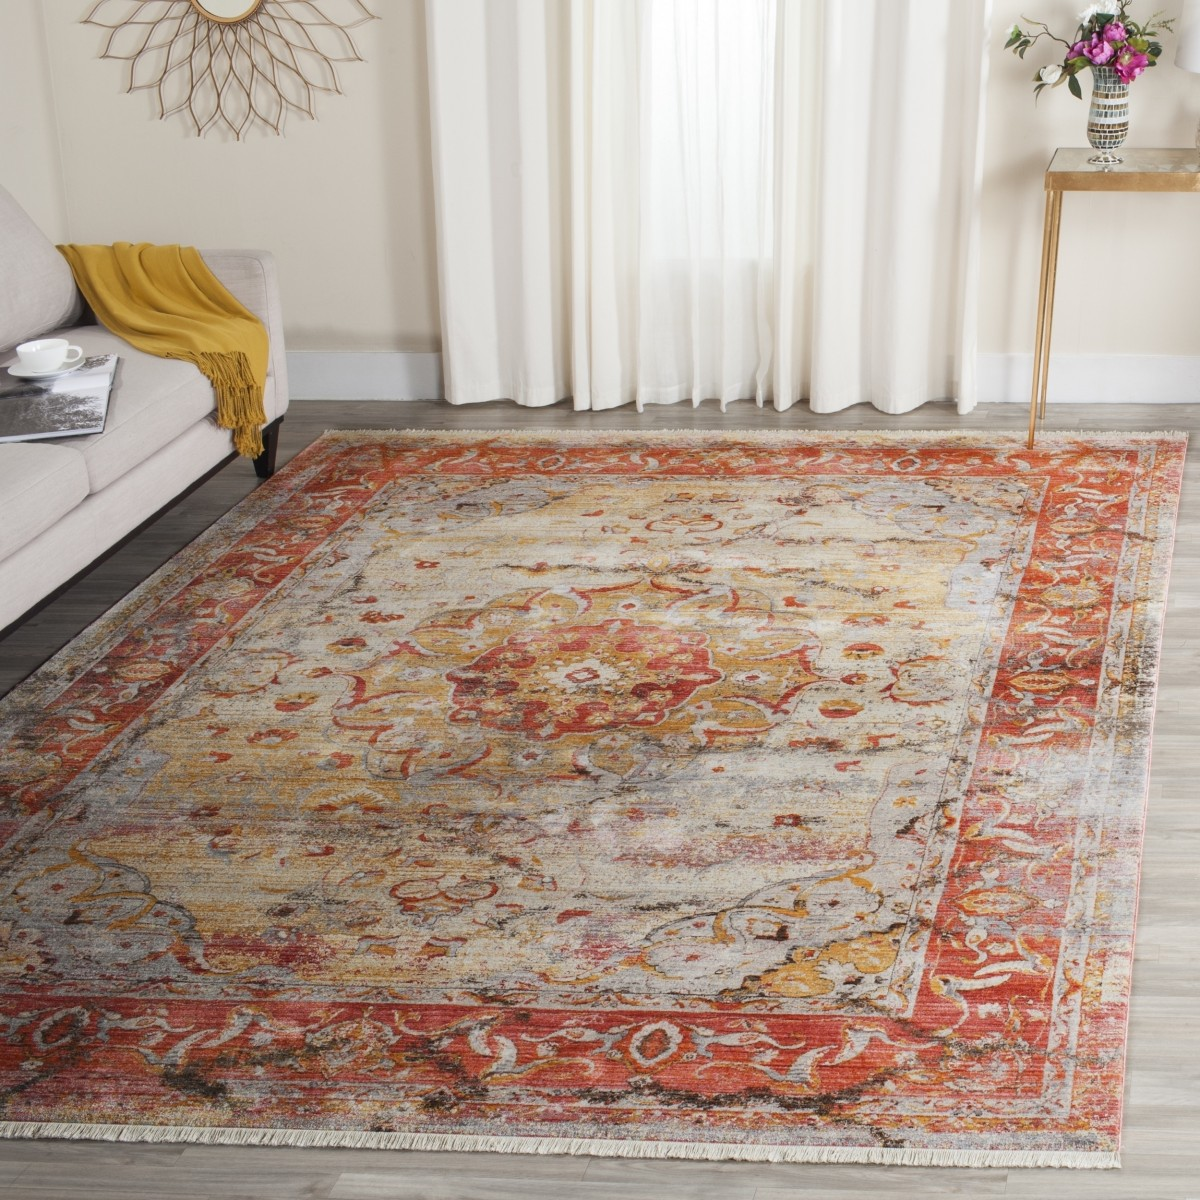 Transform Any Room in Your House with an Area Rug Sonoma